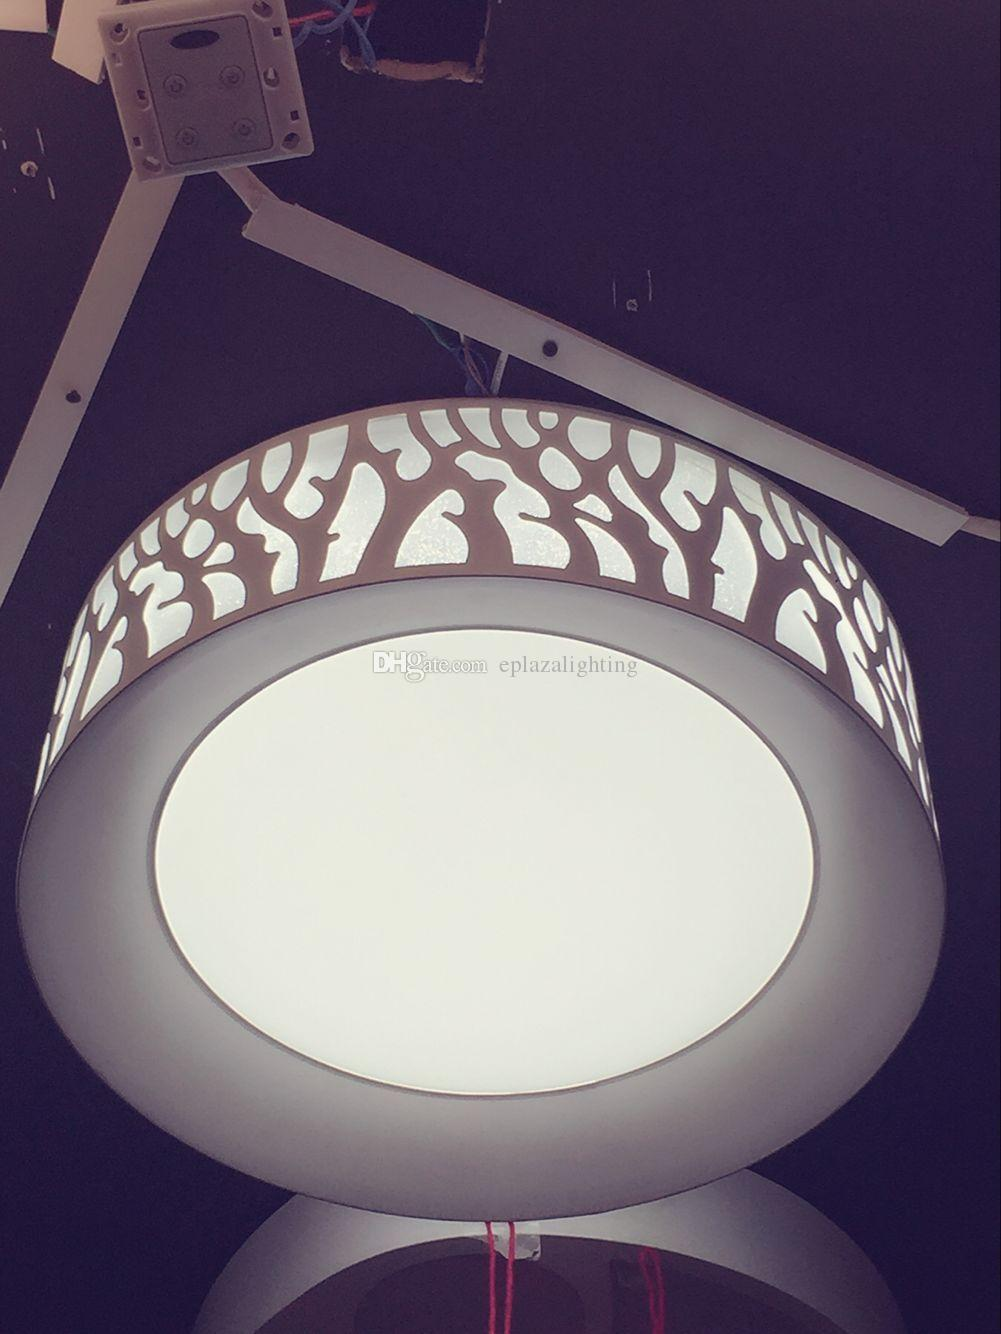 2017 Ceiling Lights220v Led Patch Circular Forest Tree Lamp Living Room Dining Bedroom From Eplazalighting 14071